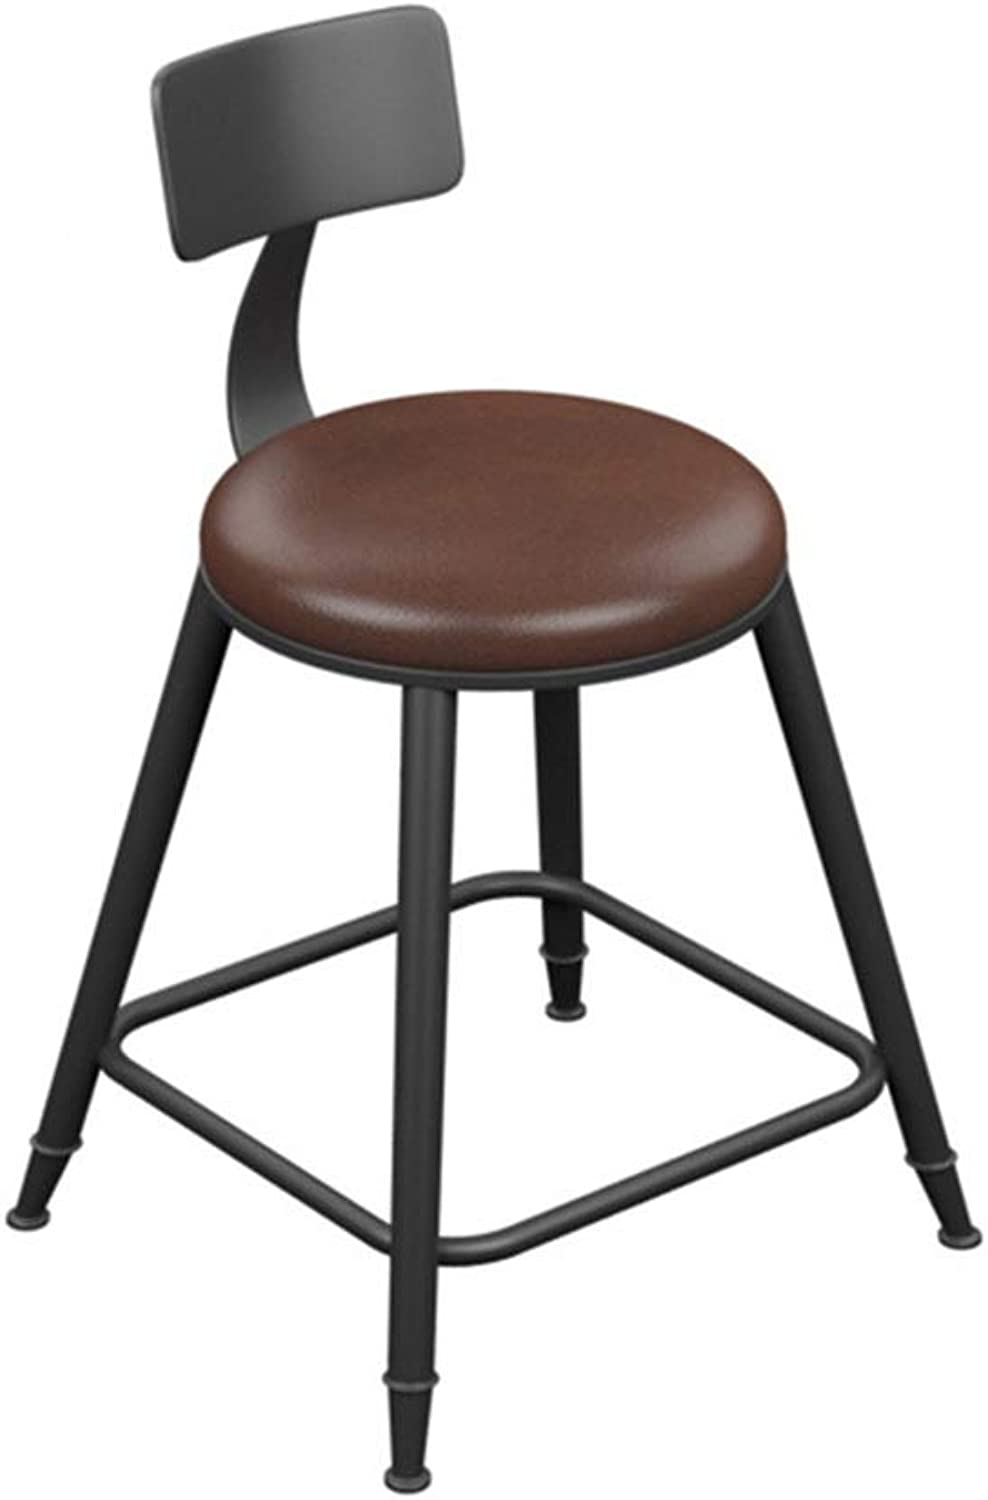 Round Barstool Iron Breakfast Dining Stool for Kitchen Bar Counter Home Commercial Chair High Stool with Backrest and PU Cushion LOFT Industrial Style (Size   Height 45cm)